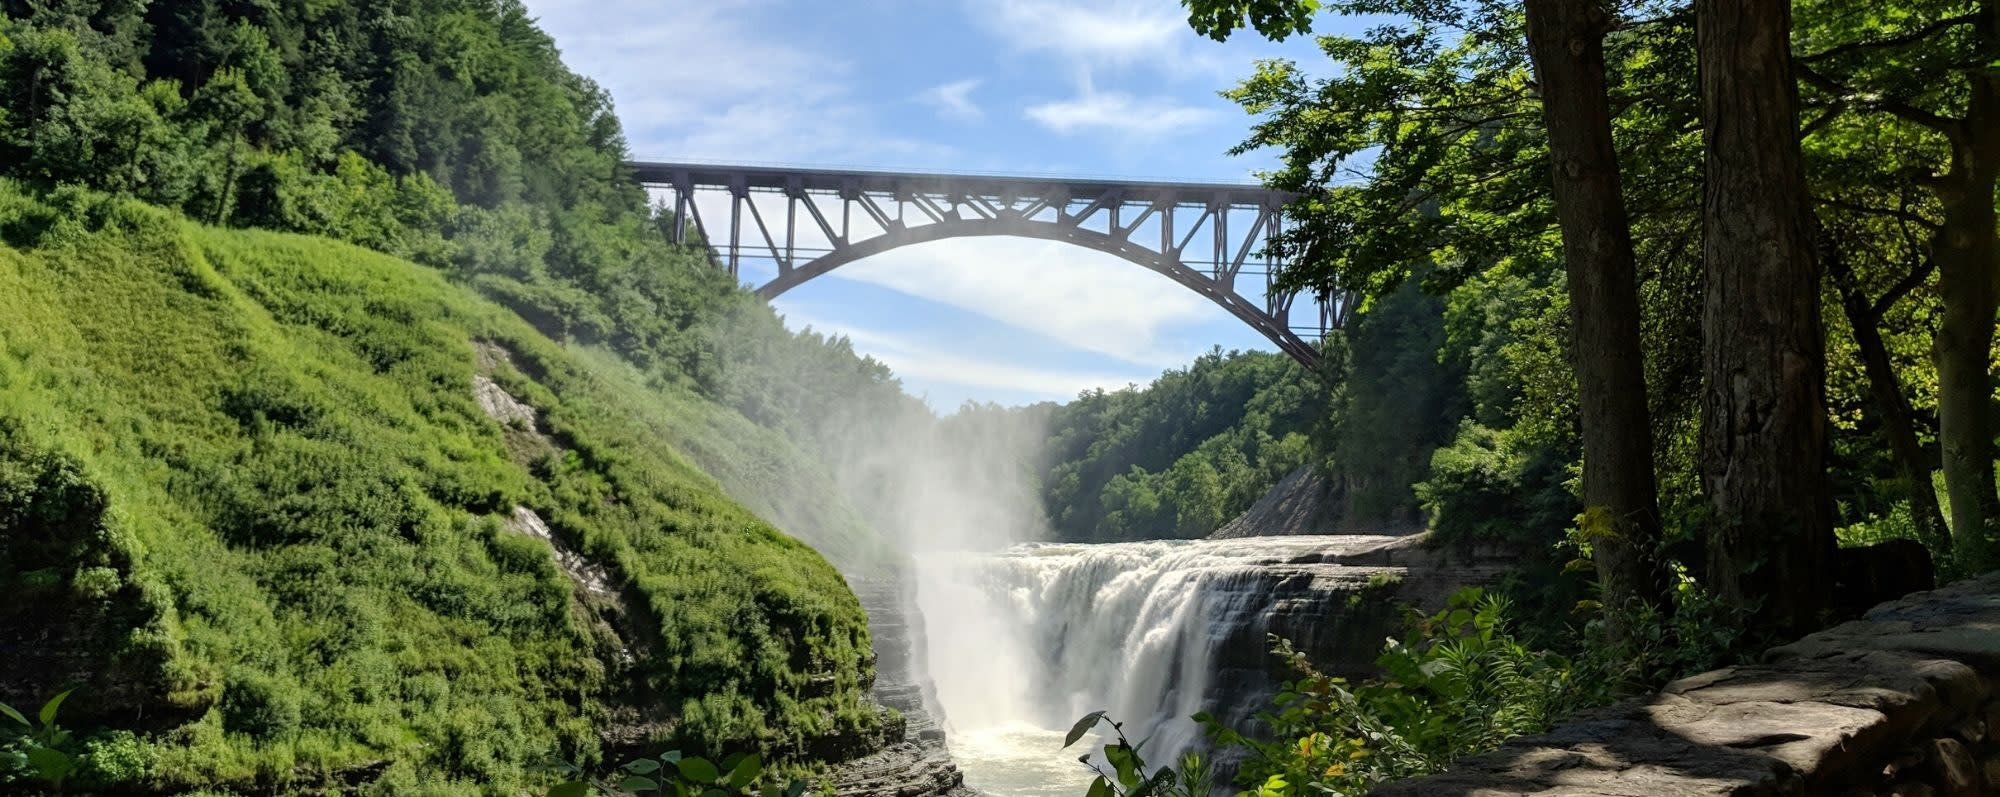 A view of the bridge over the falls at Letchworth State Park